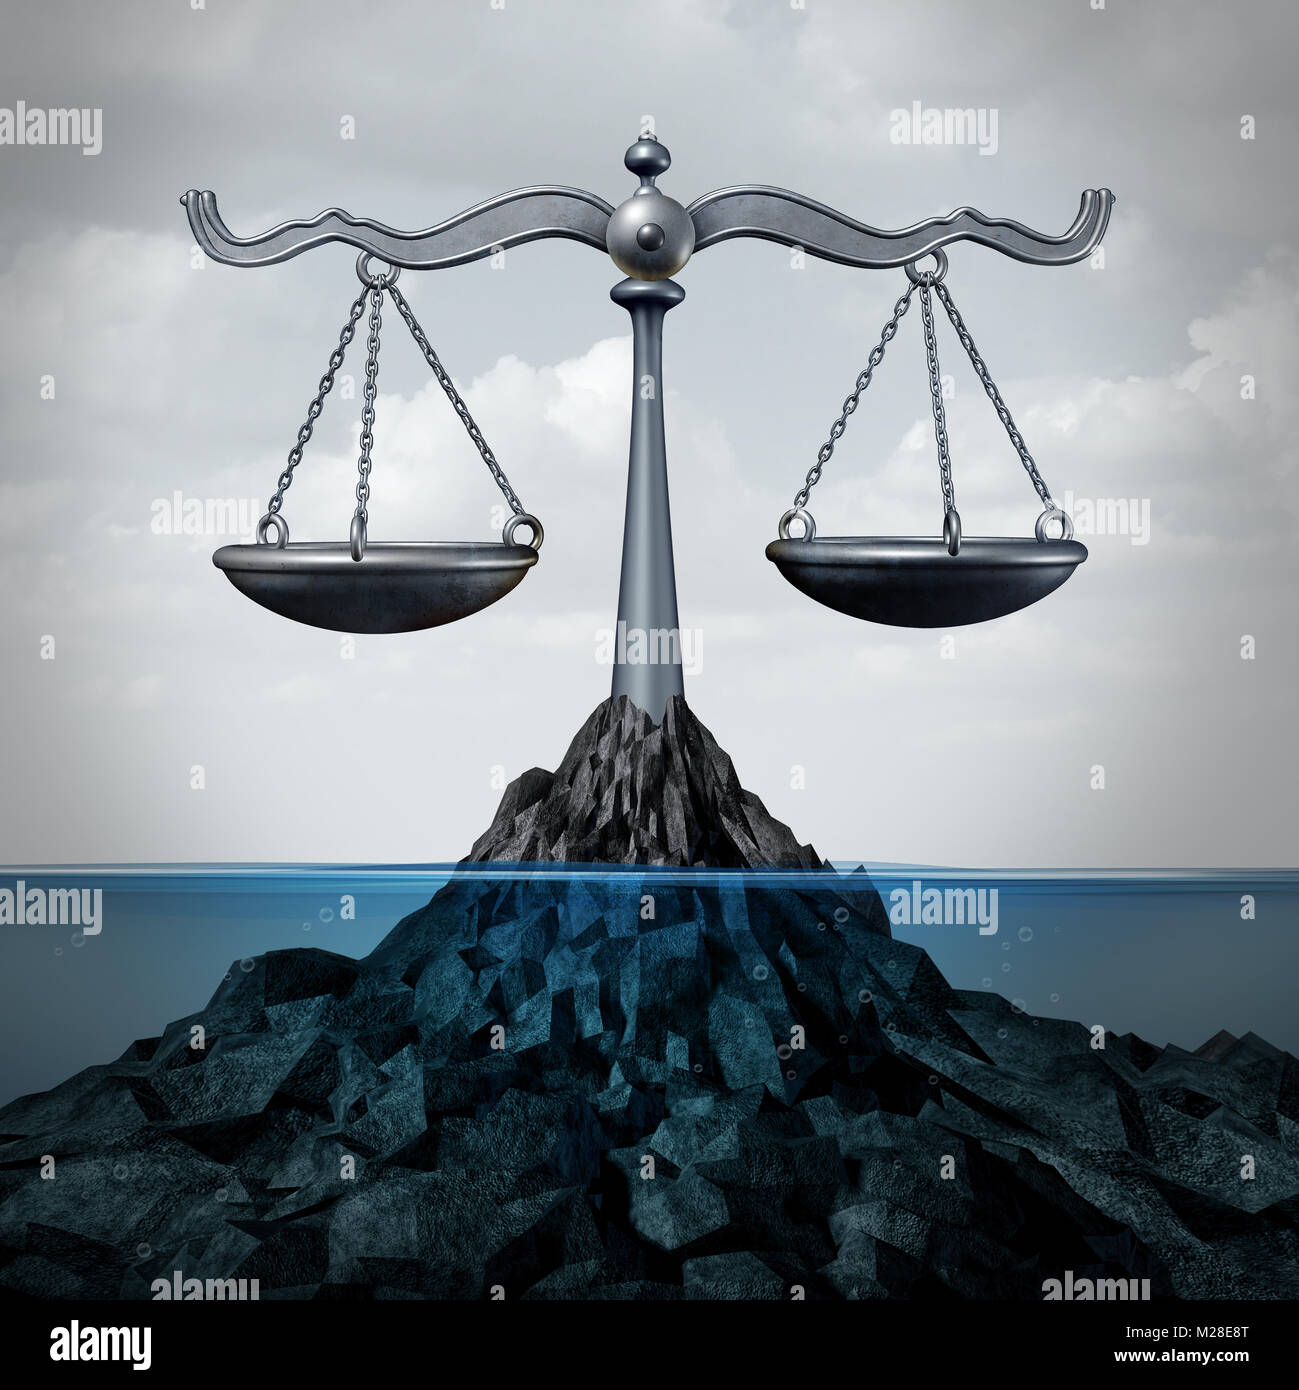 Maritime and admirality law and ocean legal services as a scale of justice concept or fishing regulations symbol Stock Photo